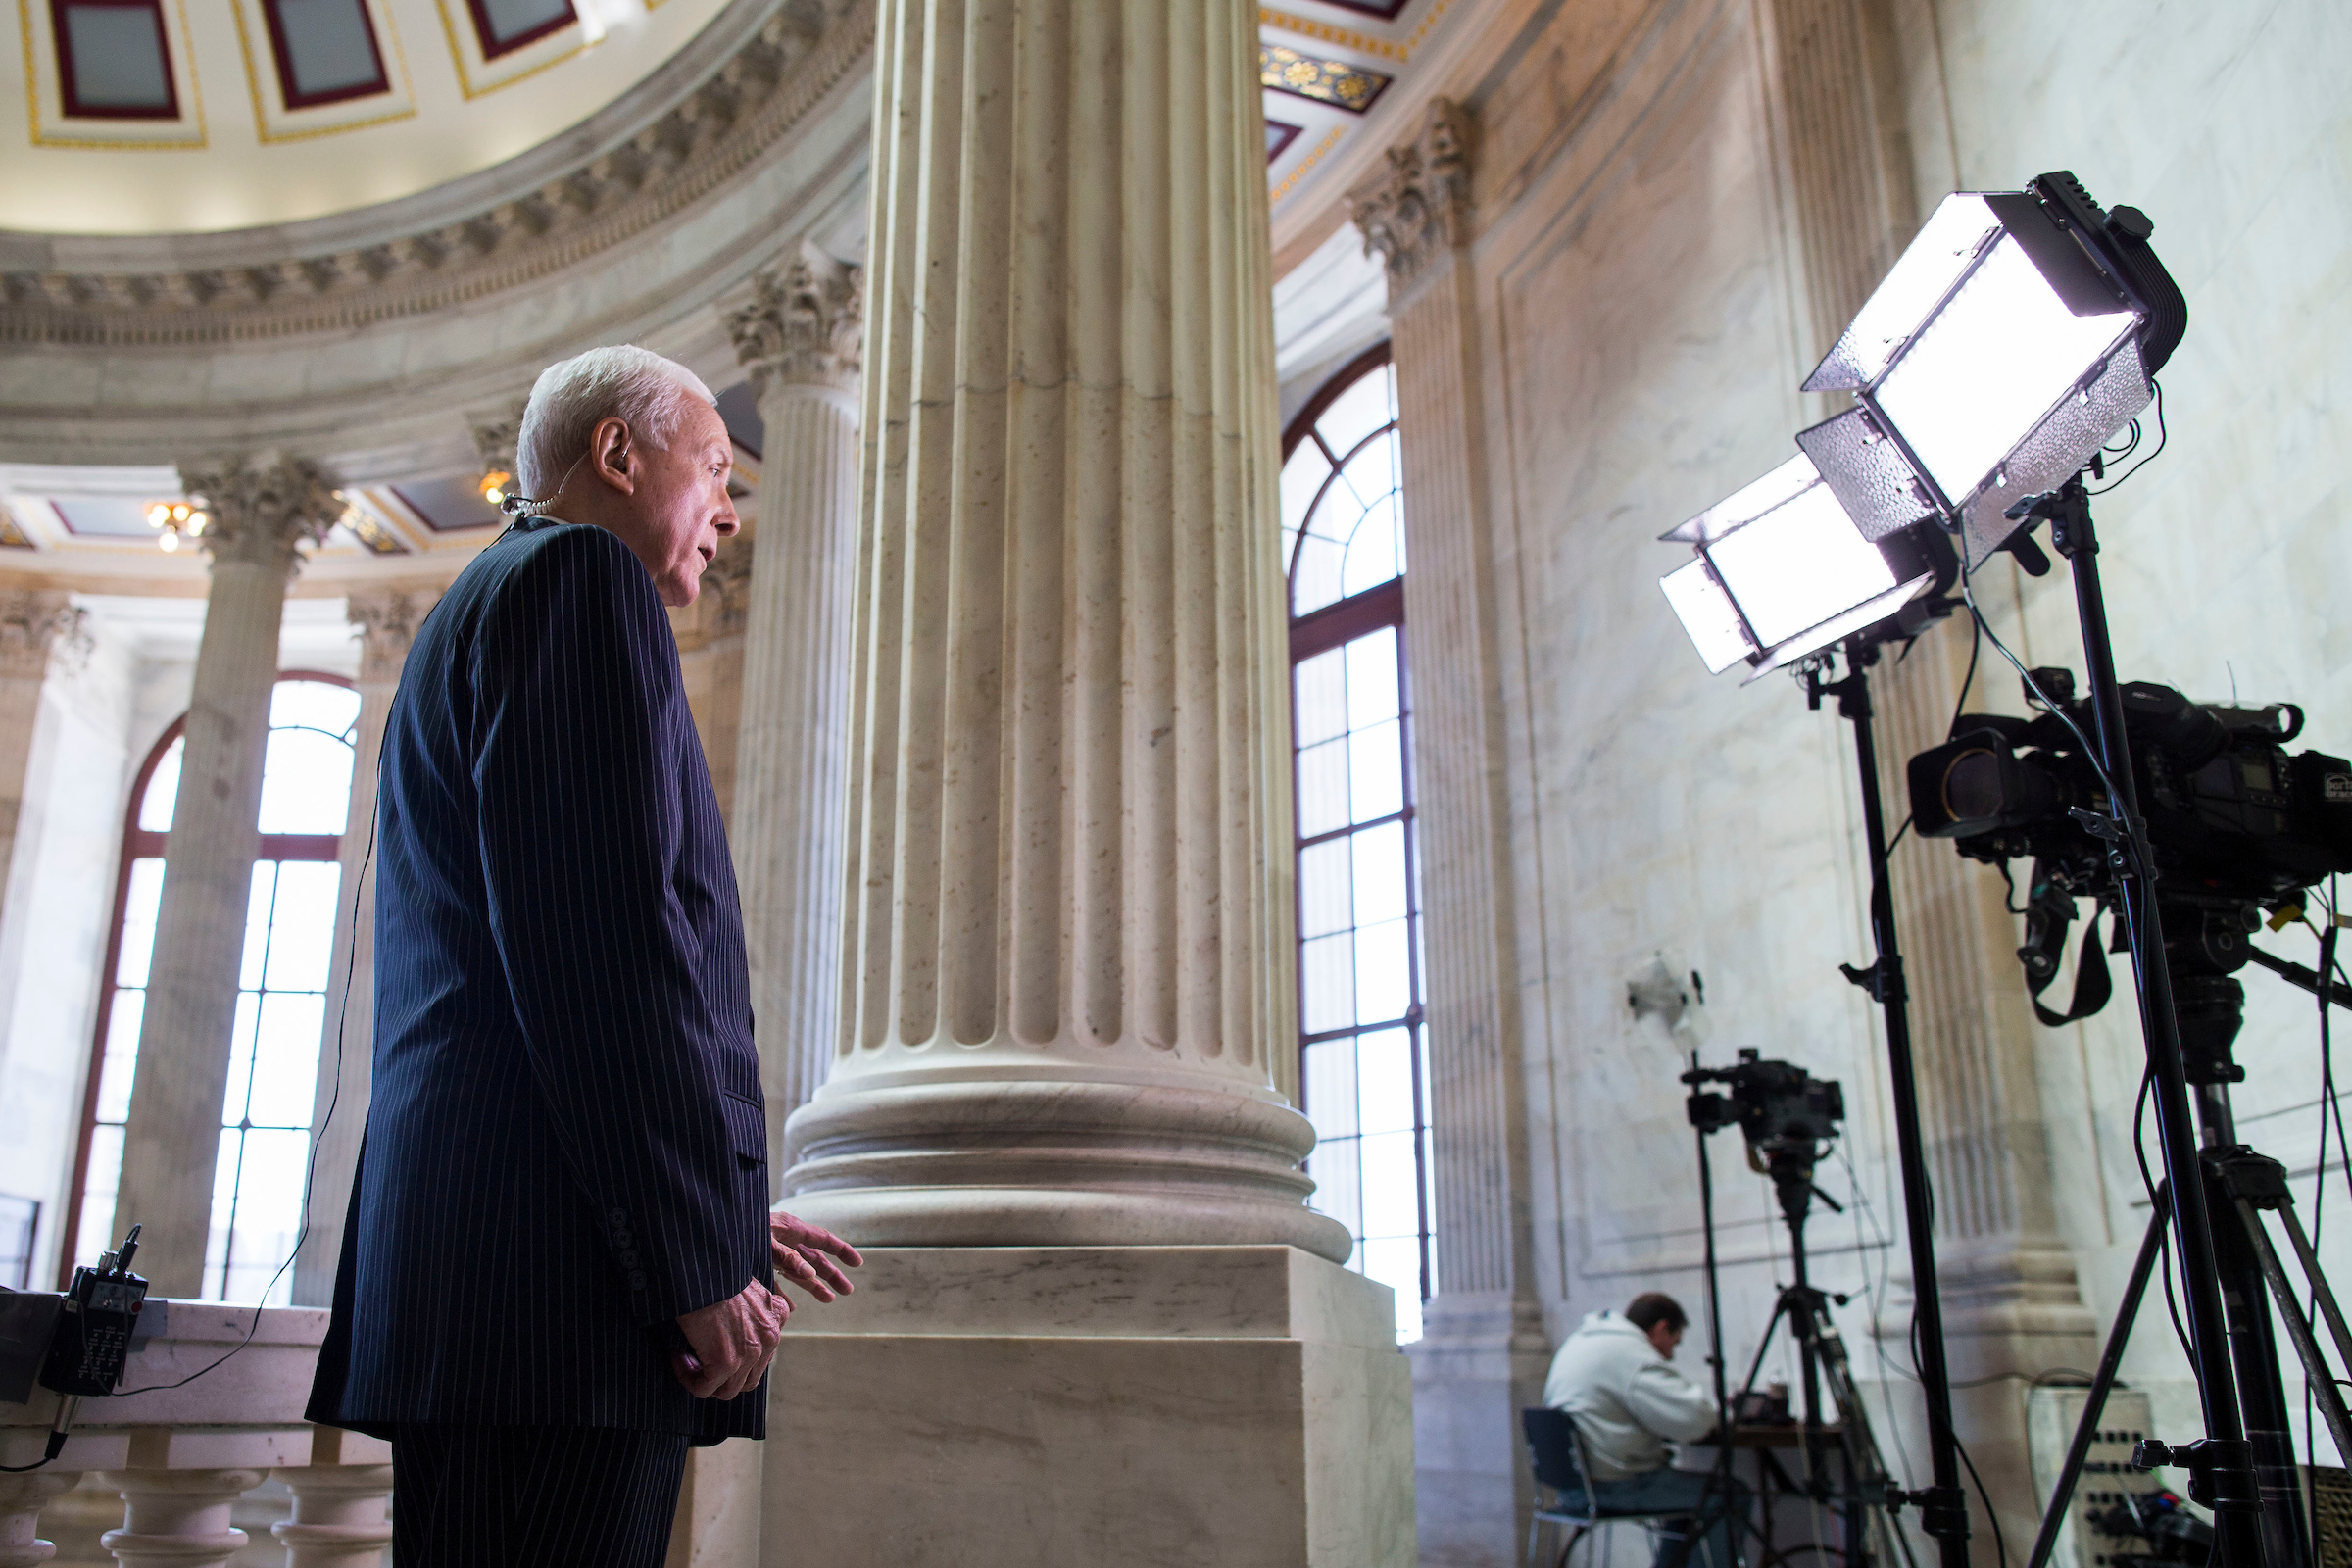 UNITED STATES - MARCH 16 - Sen. Orrin Hatch, R-Utah, does a television interview in the Russell Rotunda after President Barack Obama urged Senate Republicans to grant hearings and a confirmation vote to Merrick Garland, his nominee to replace the late Justice Antonin Scalia on the Supreme Court, on Capitol Hill in Washington, Wednesday, March 16, 2016. (Photo By Al Drago/CQ Roll Call)